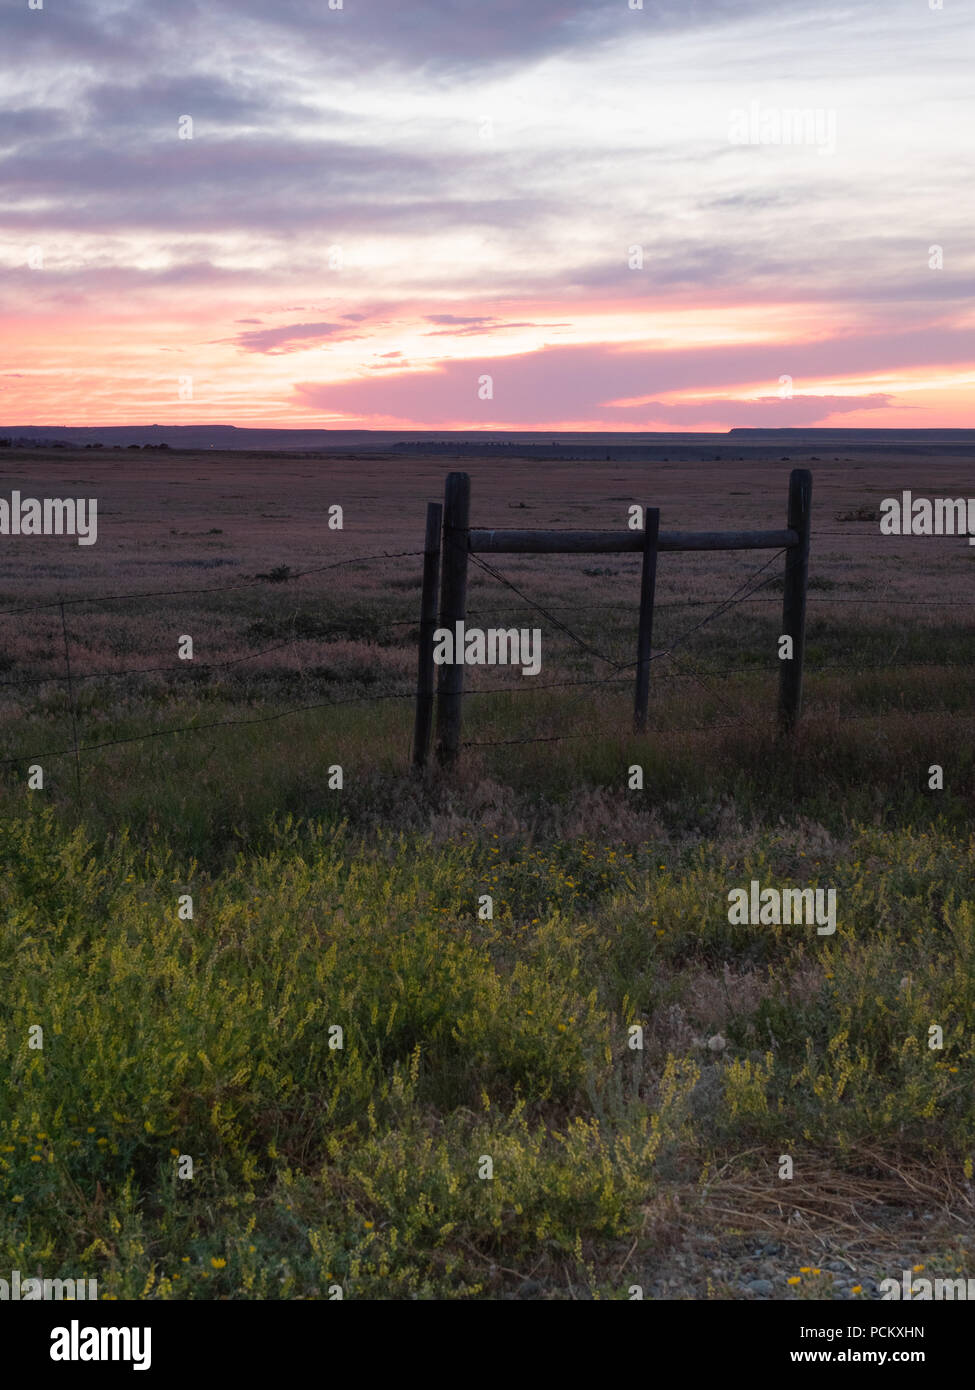 A barbed wire fence with wooden posts and yellow wildflowers in the foreground with a peach, lavender and orange sunset overhead. - Stock Image